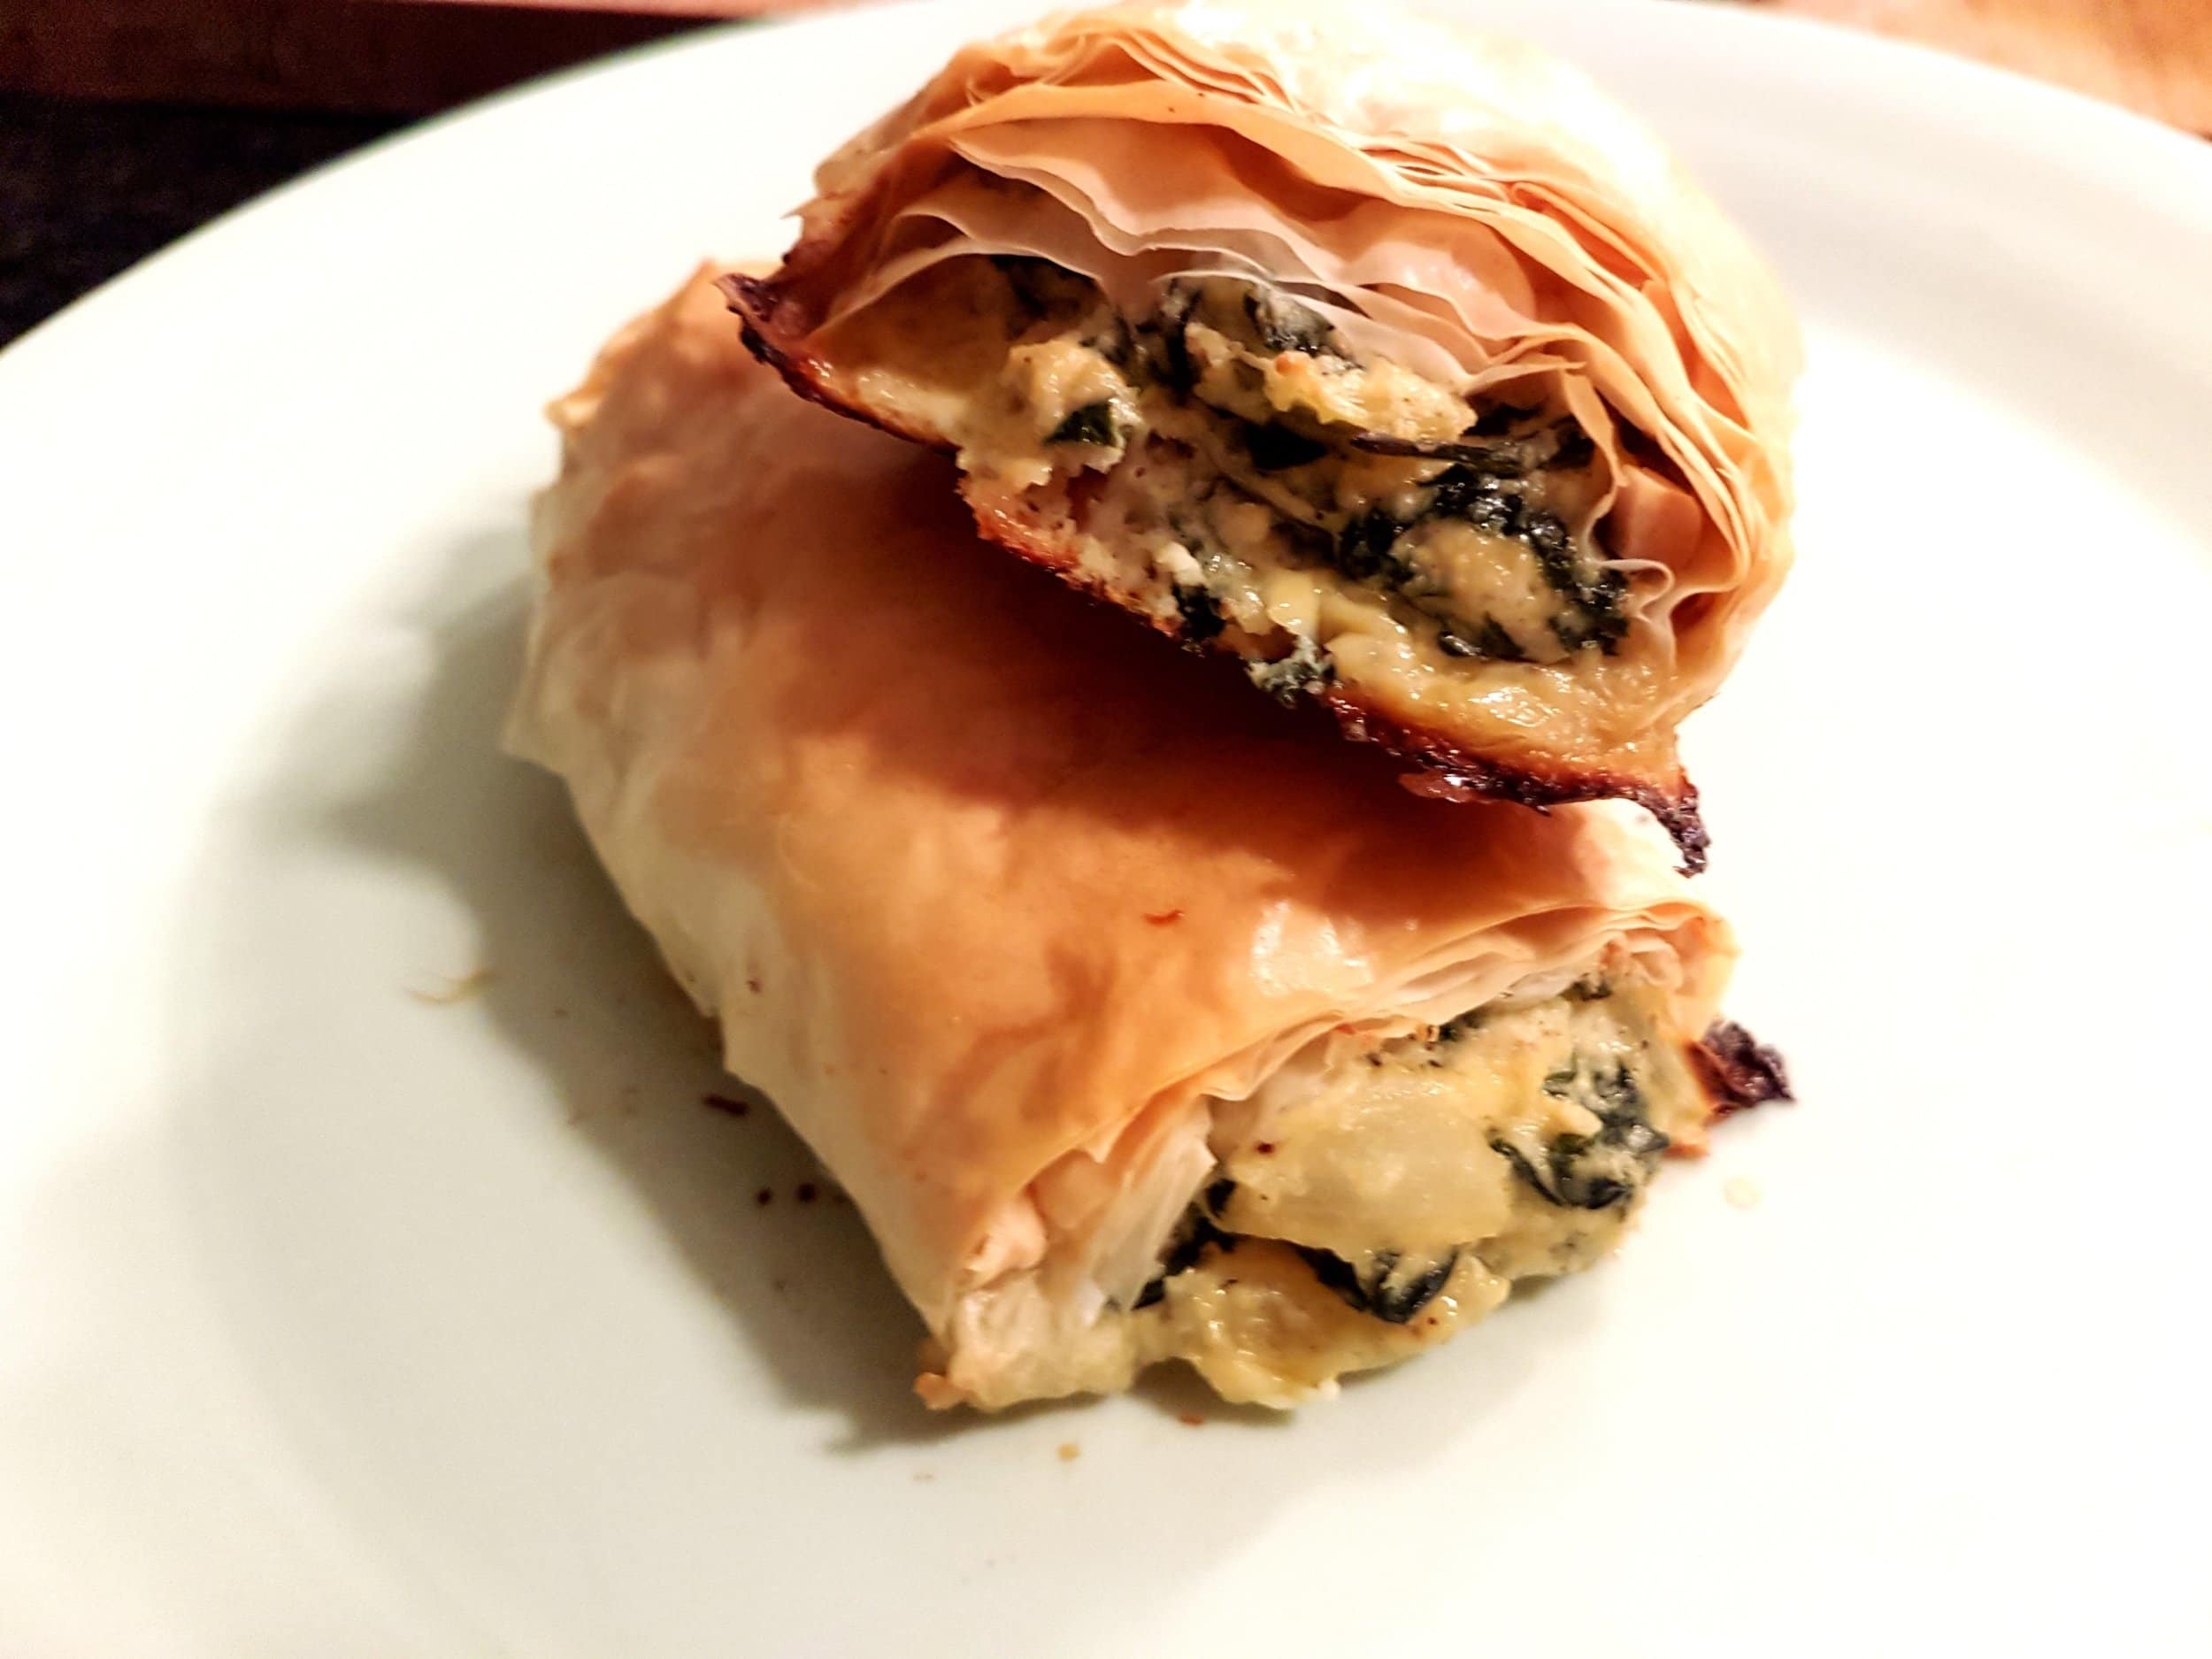 Two Spanakopita Rolls stacked on top of each other.